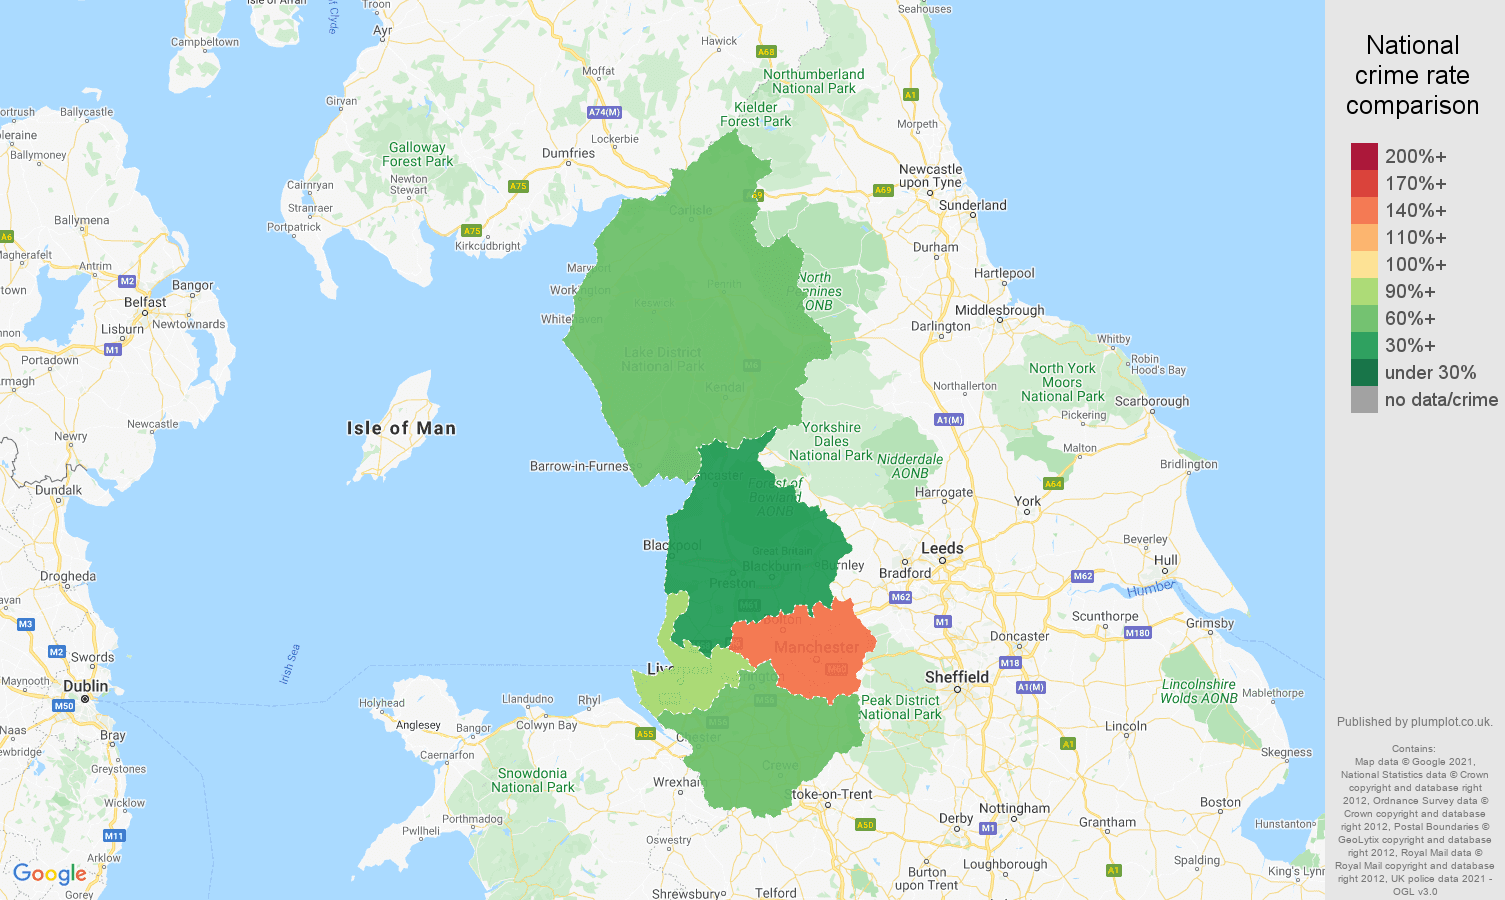 North West possession of weapons crime rate comparison map